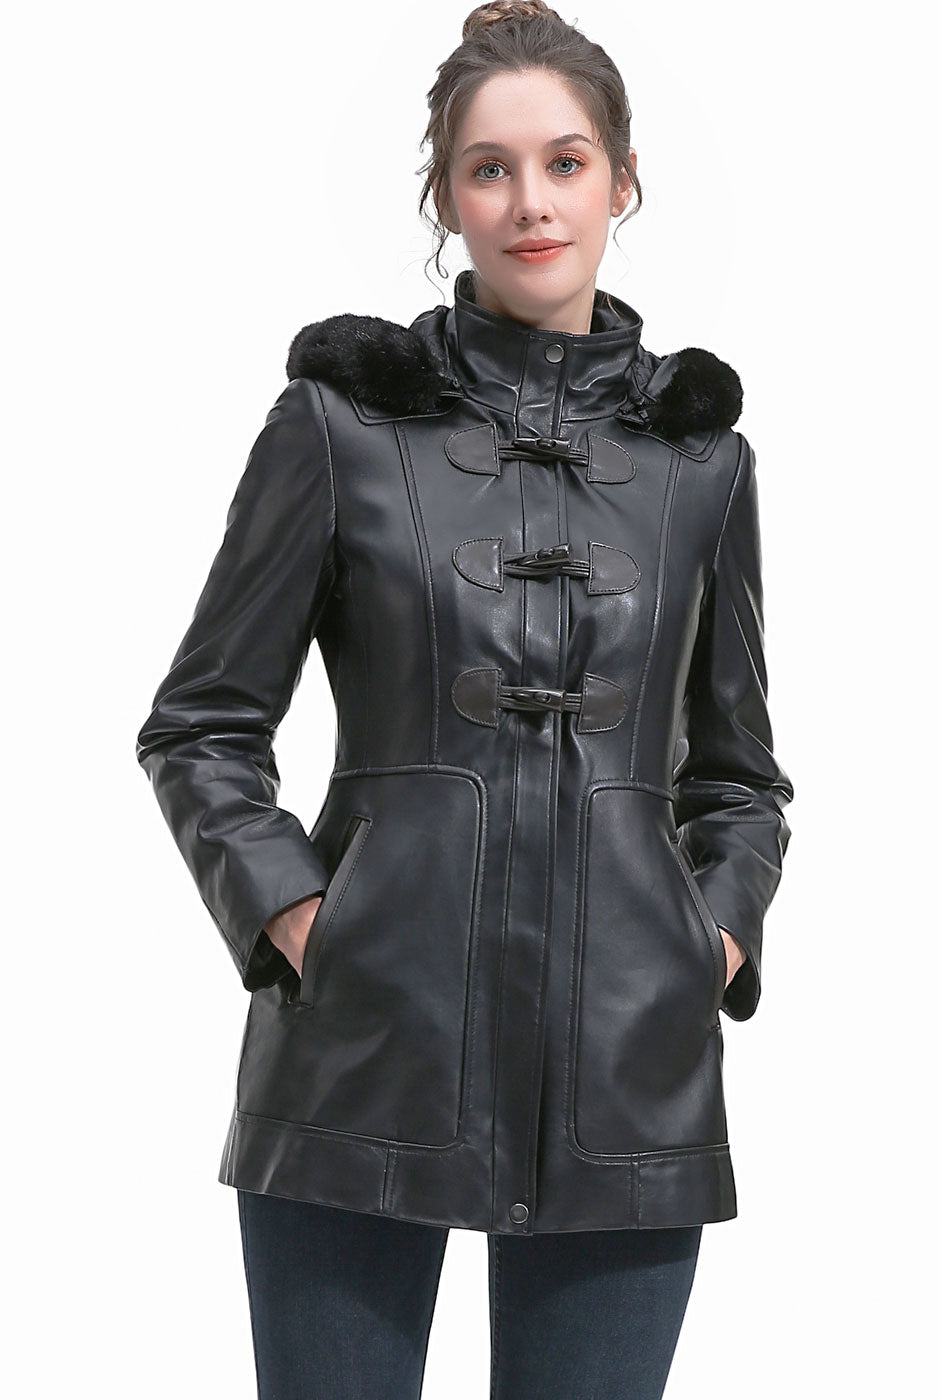 BGSD Women's New Zealand Lambskin Leather Toggle Coat